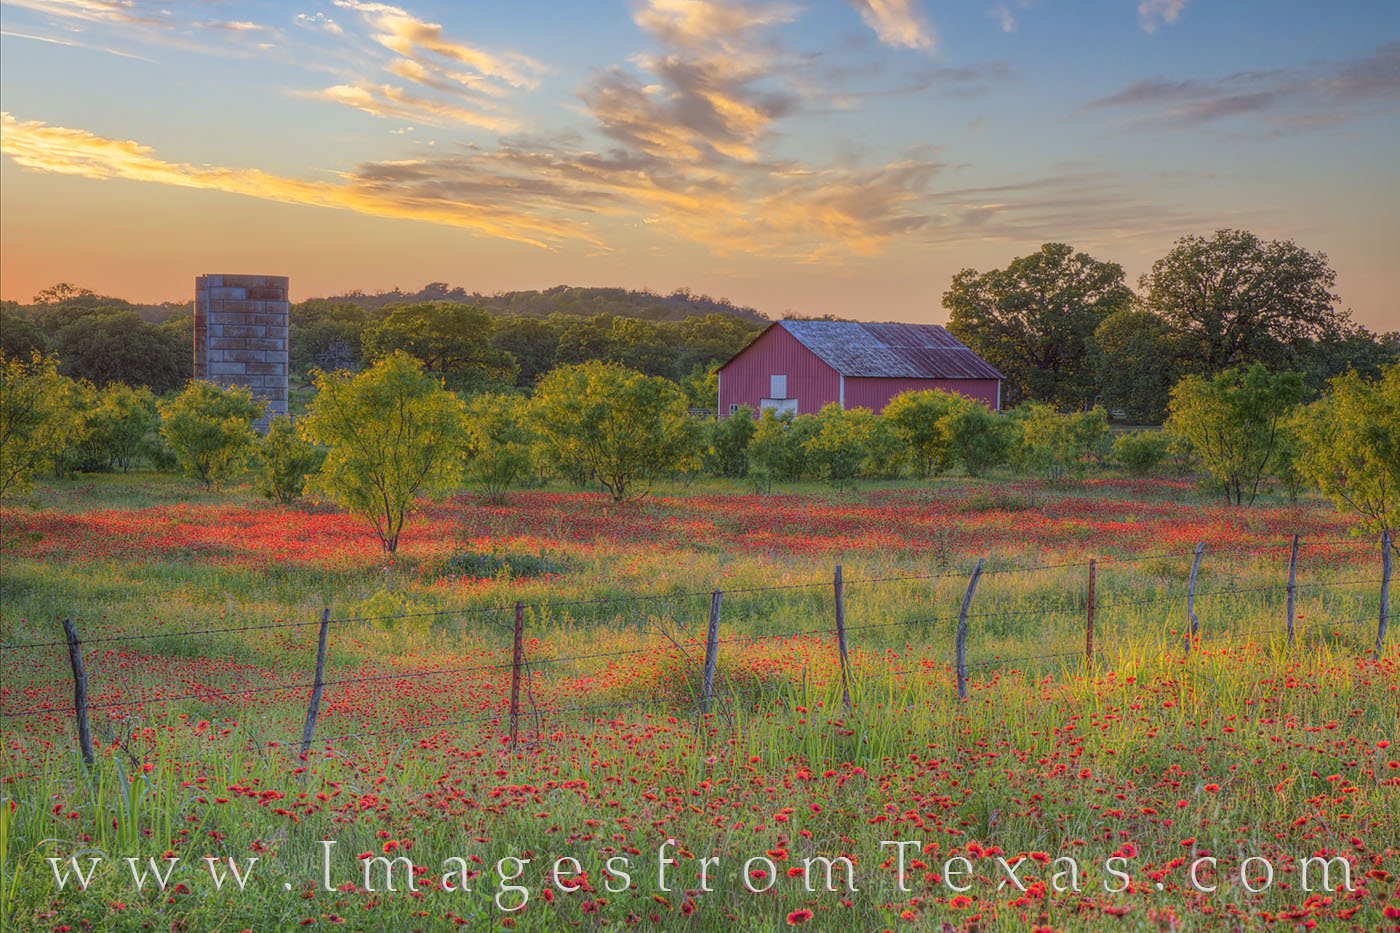 texas wildflowers, texas wildflower images, texas hill country, texas hill country photos, texas roads, texas landscapes, traveling texas, texas highways, red bard, texas evening, photo